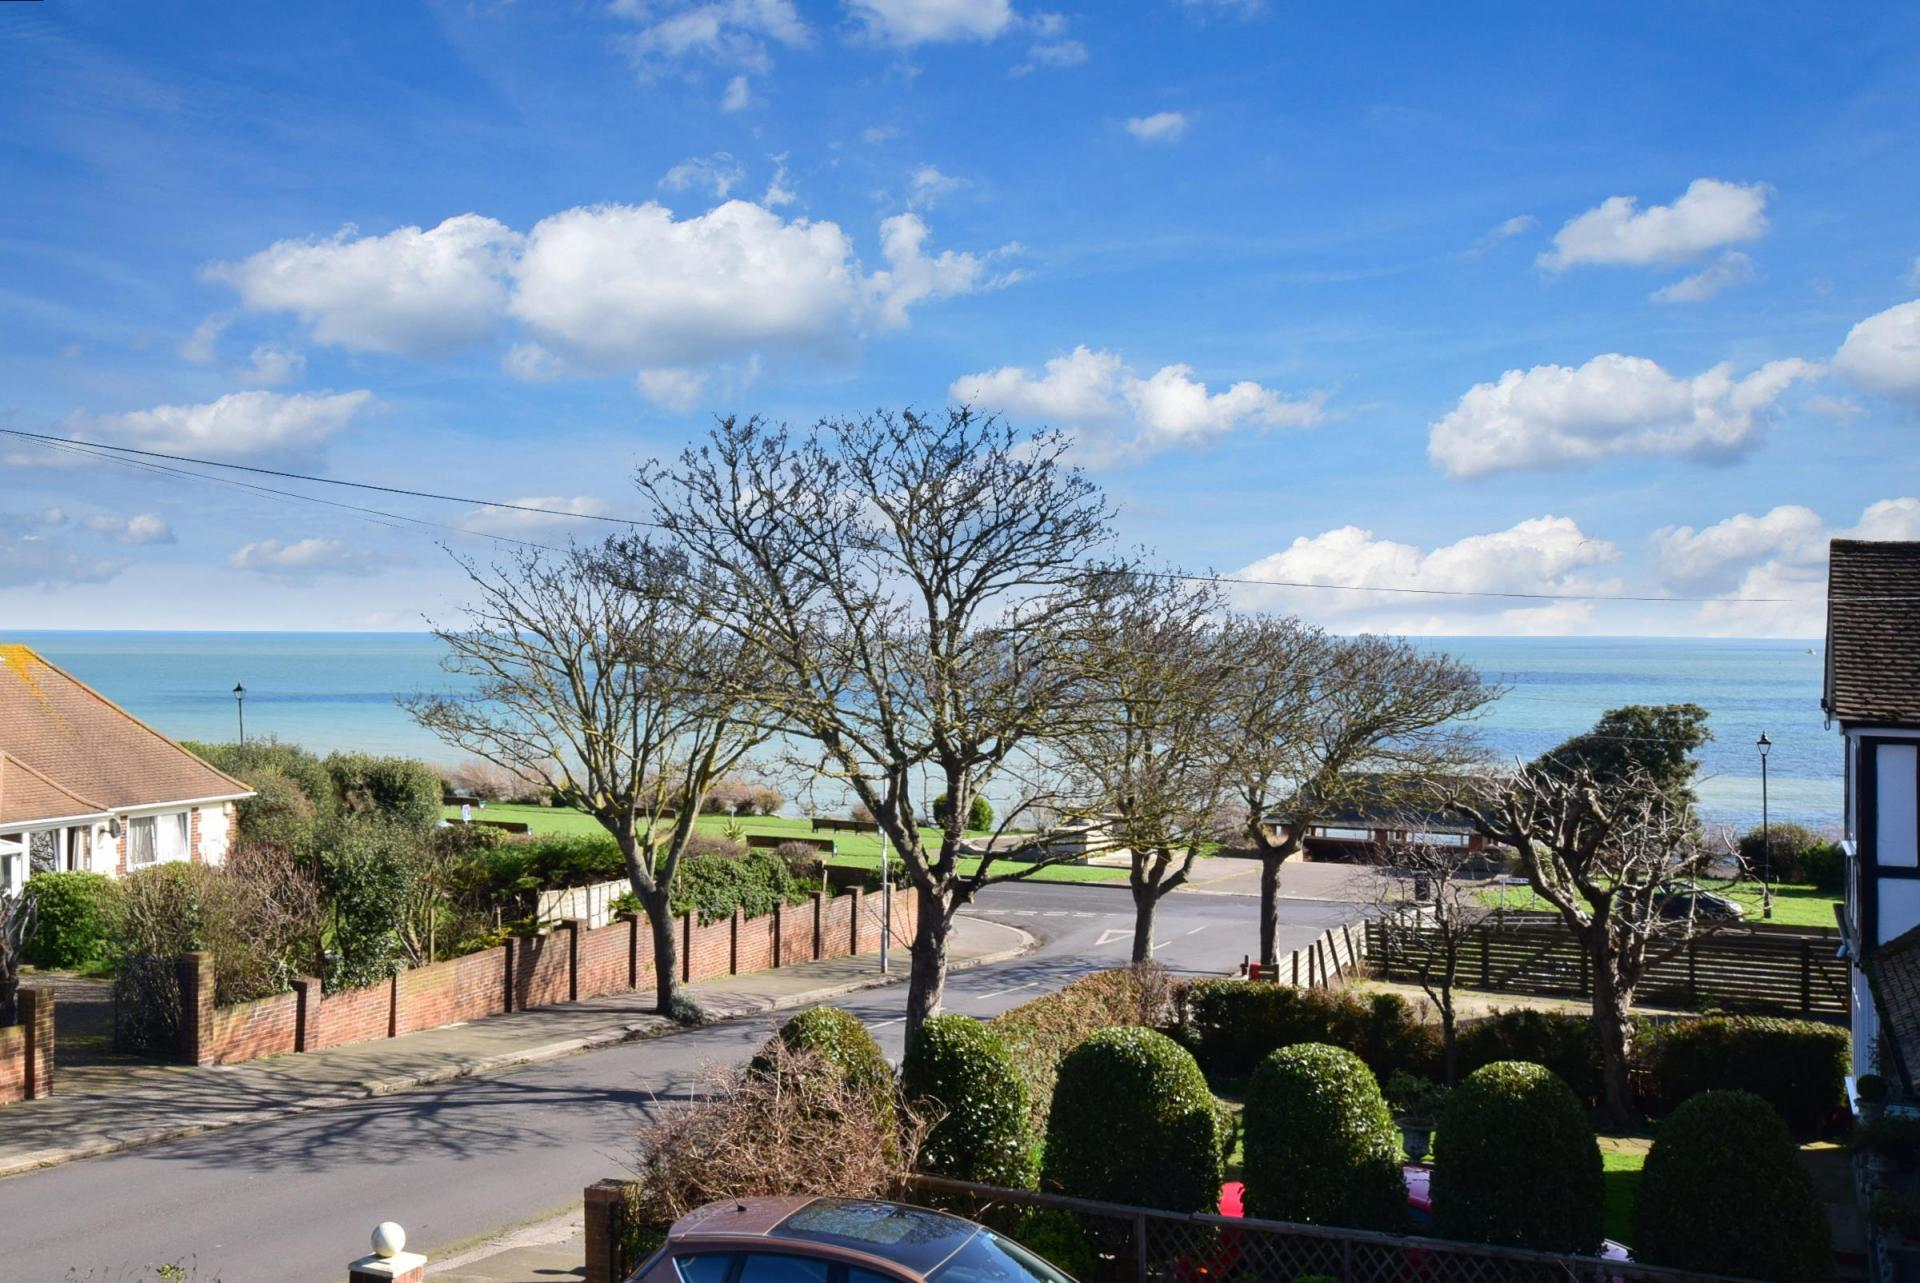 4 Bedroom Detached House For Sale In Ramsgate